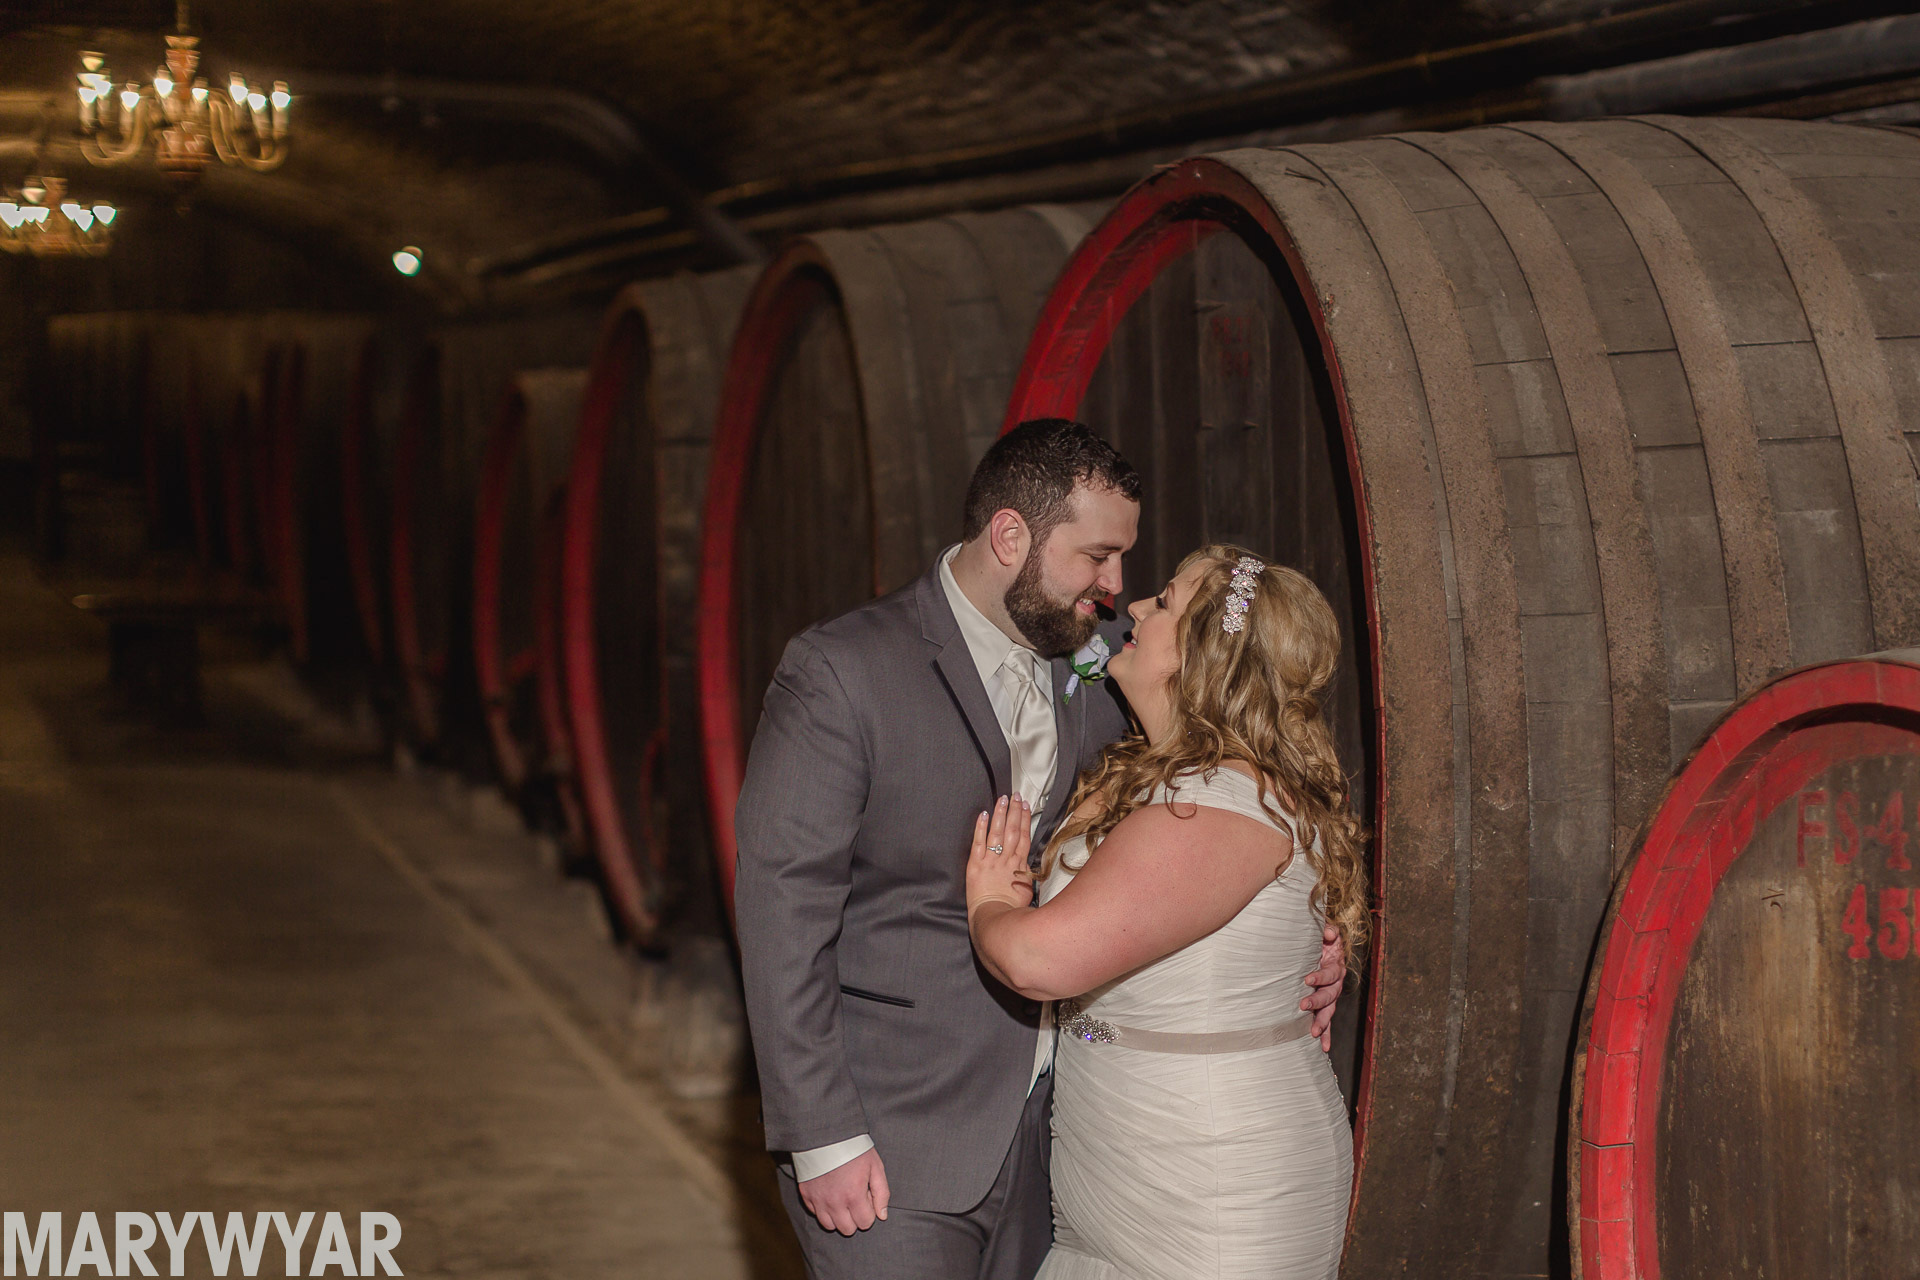 mon ami winery wedding photos port clinton ohio